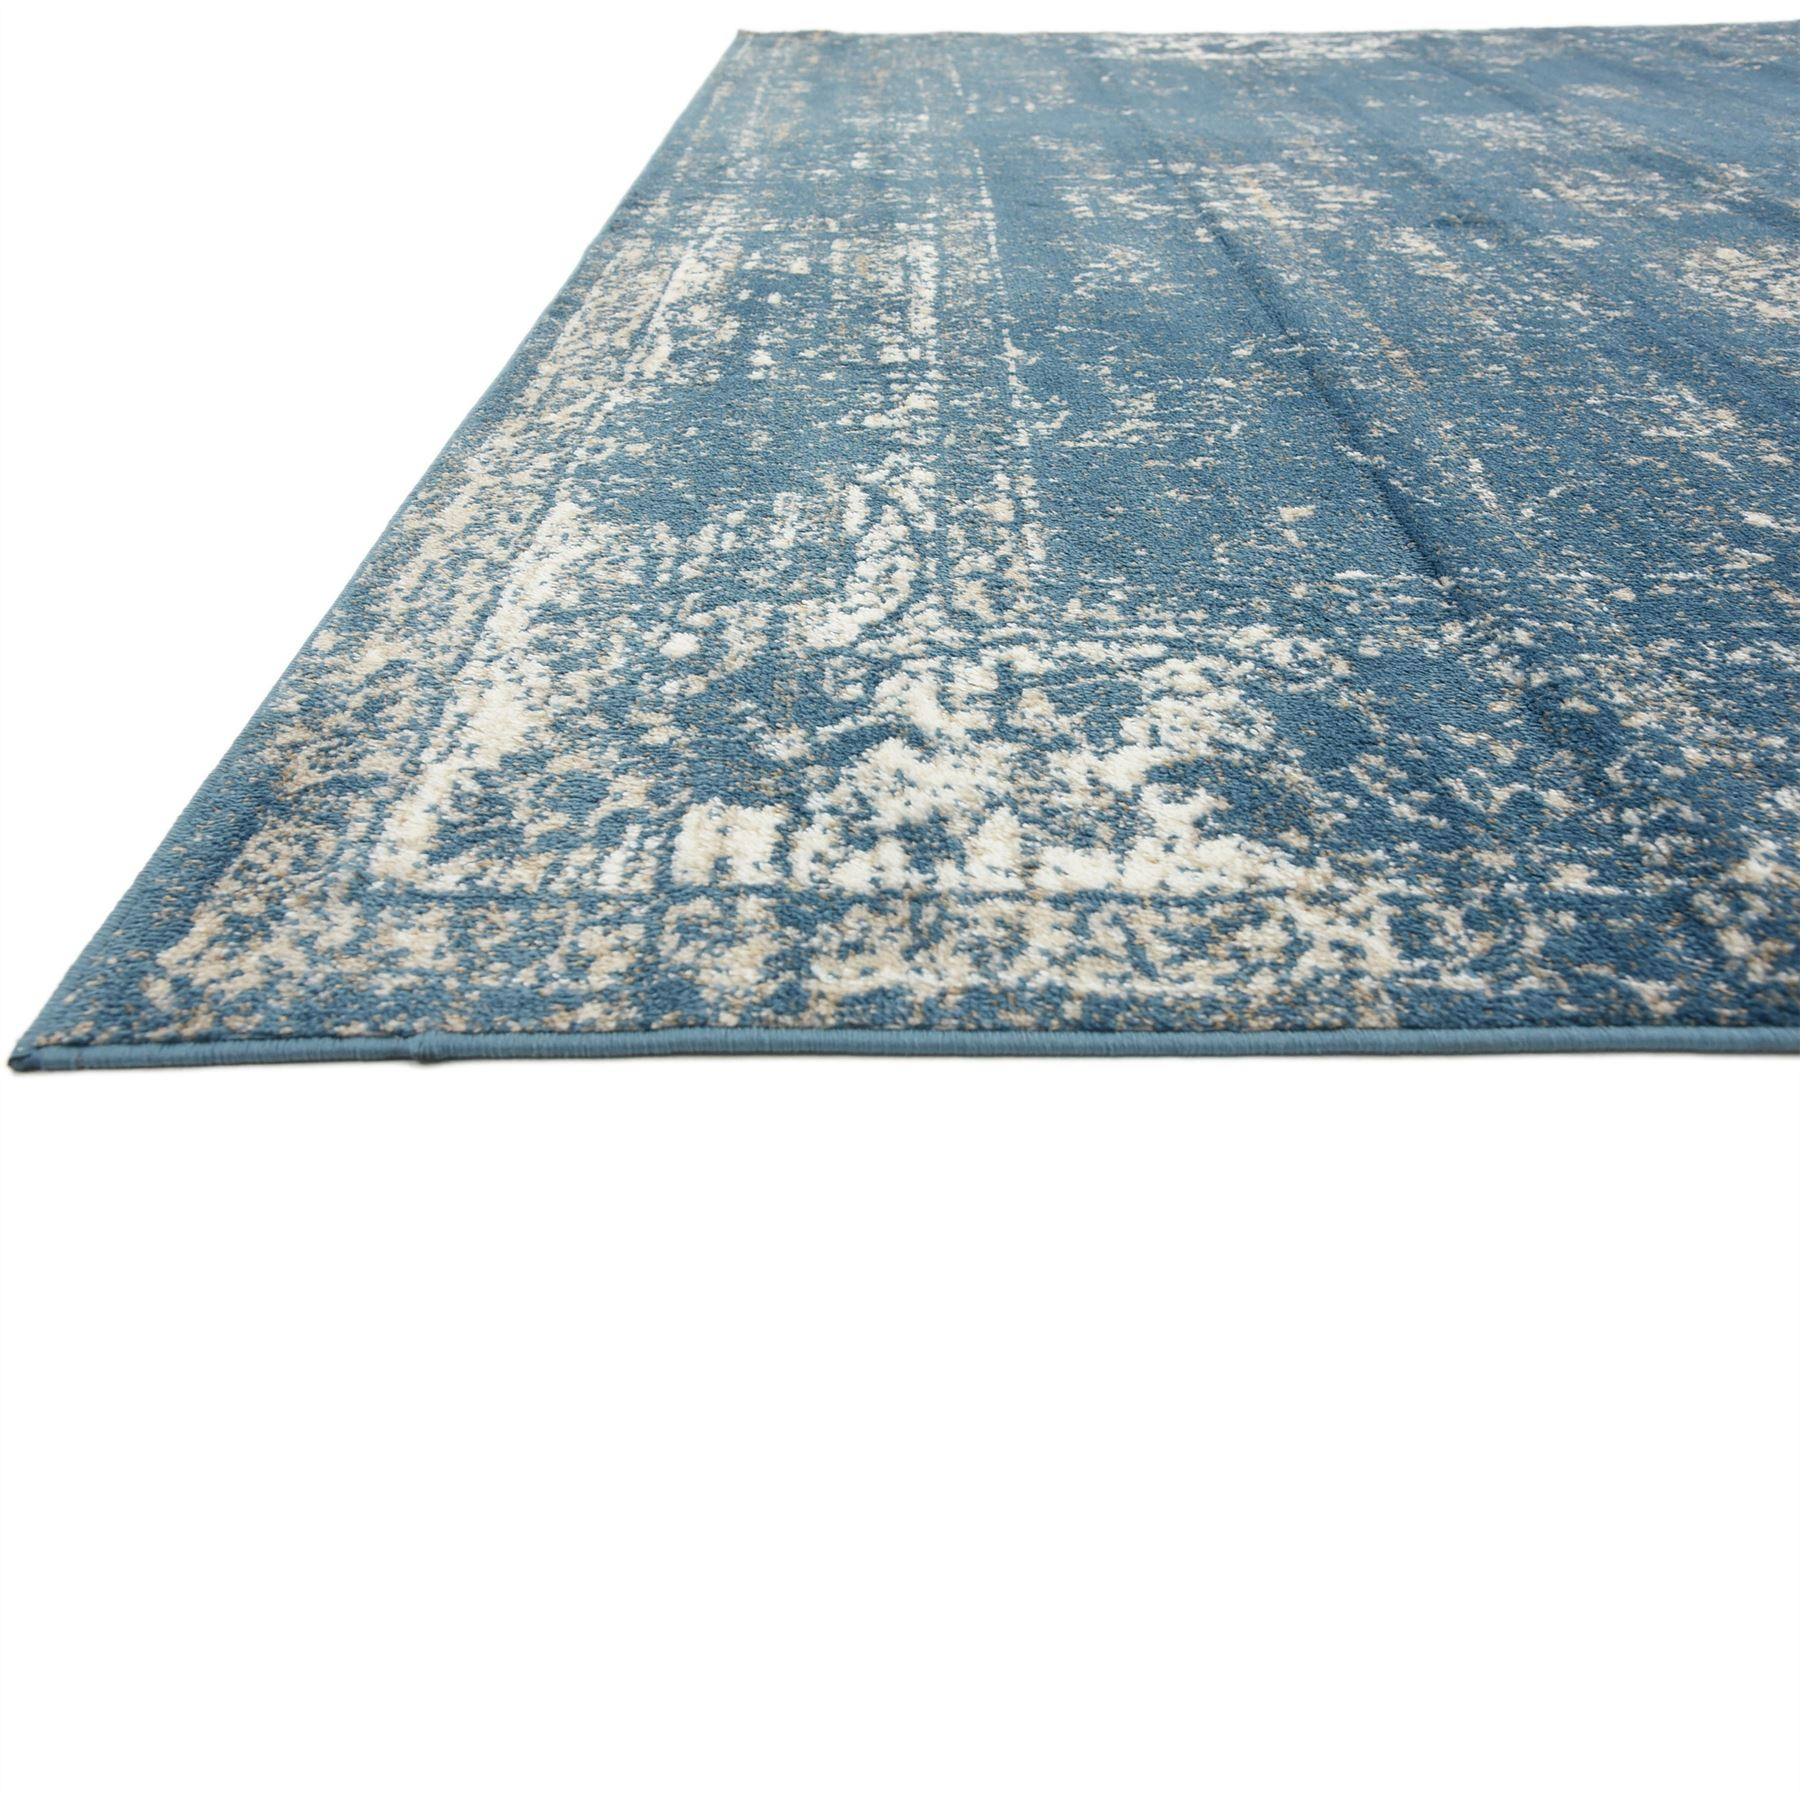 New Persian Style Rugs Floor Carpets Modern Designs Carpet